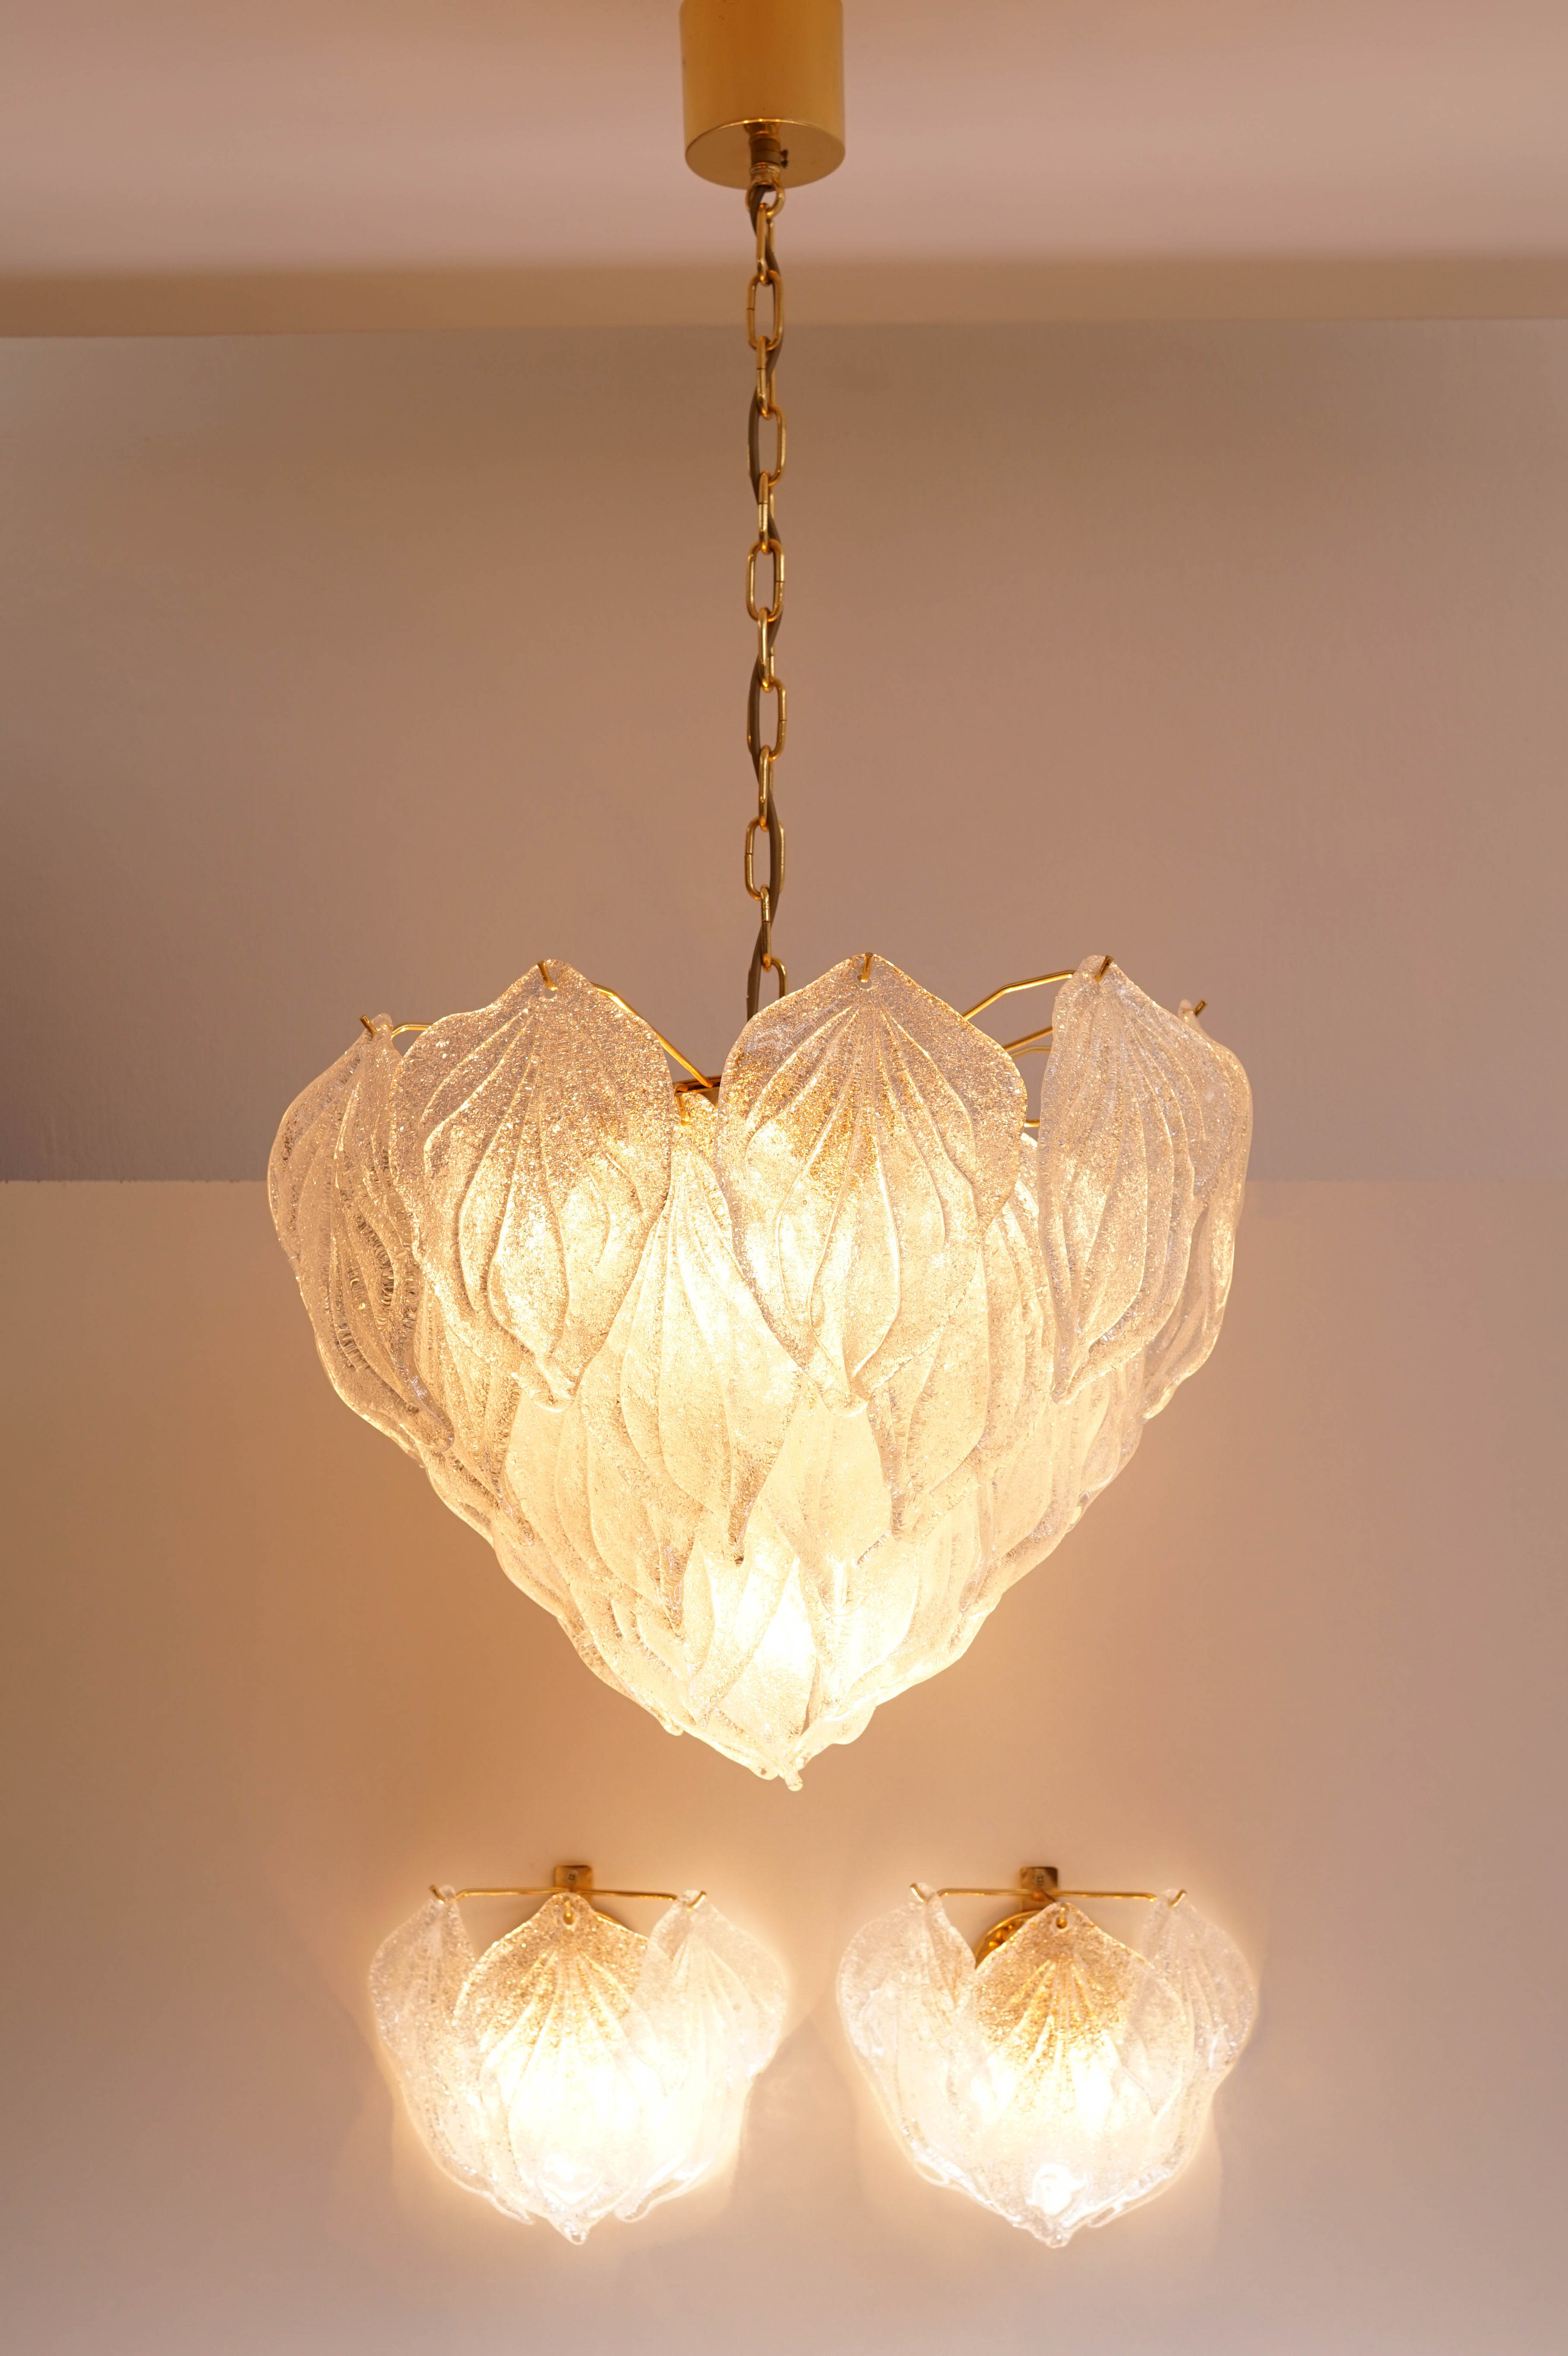 Wall sconces and chandelier by Novaresi